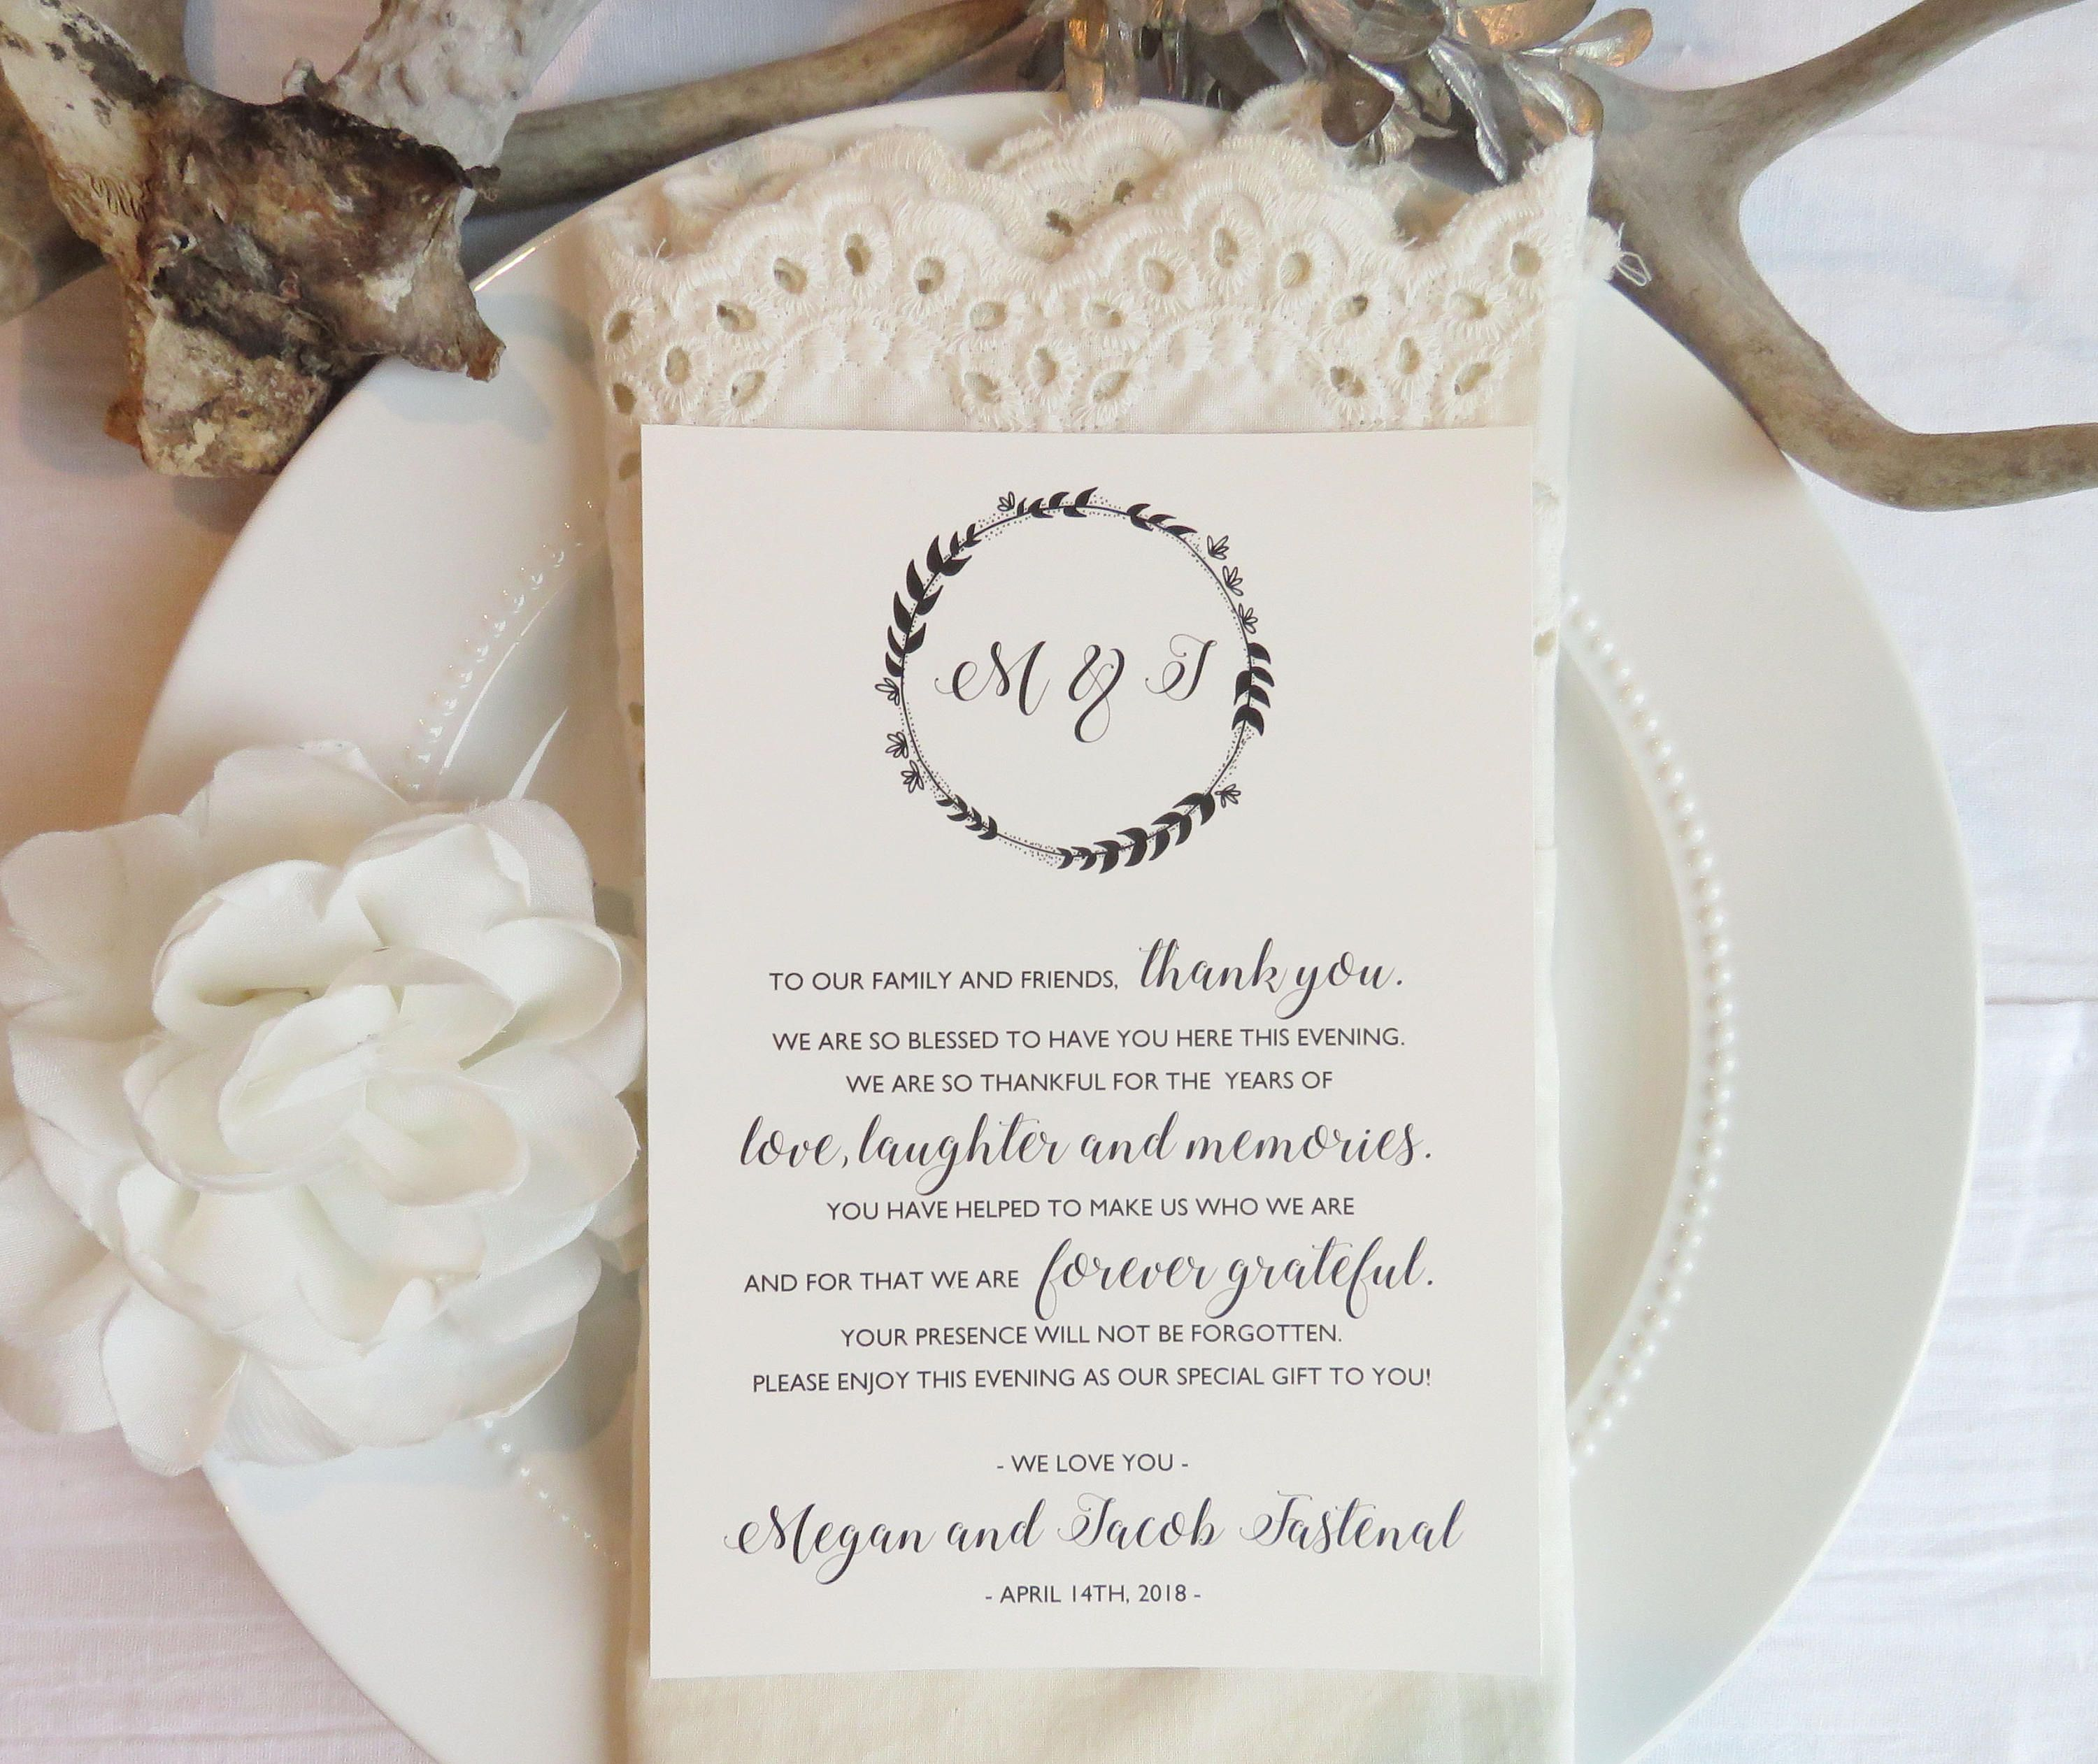 003 Fantastic Thank You Card Template Wedding High Resolution  Free Printable PublisherFull